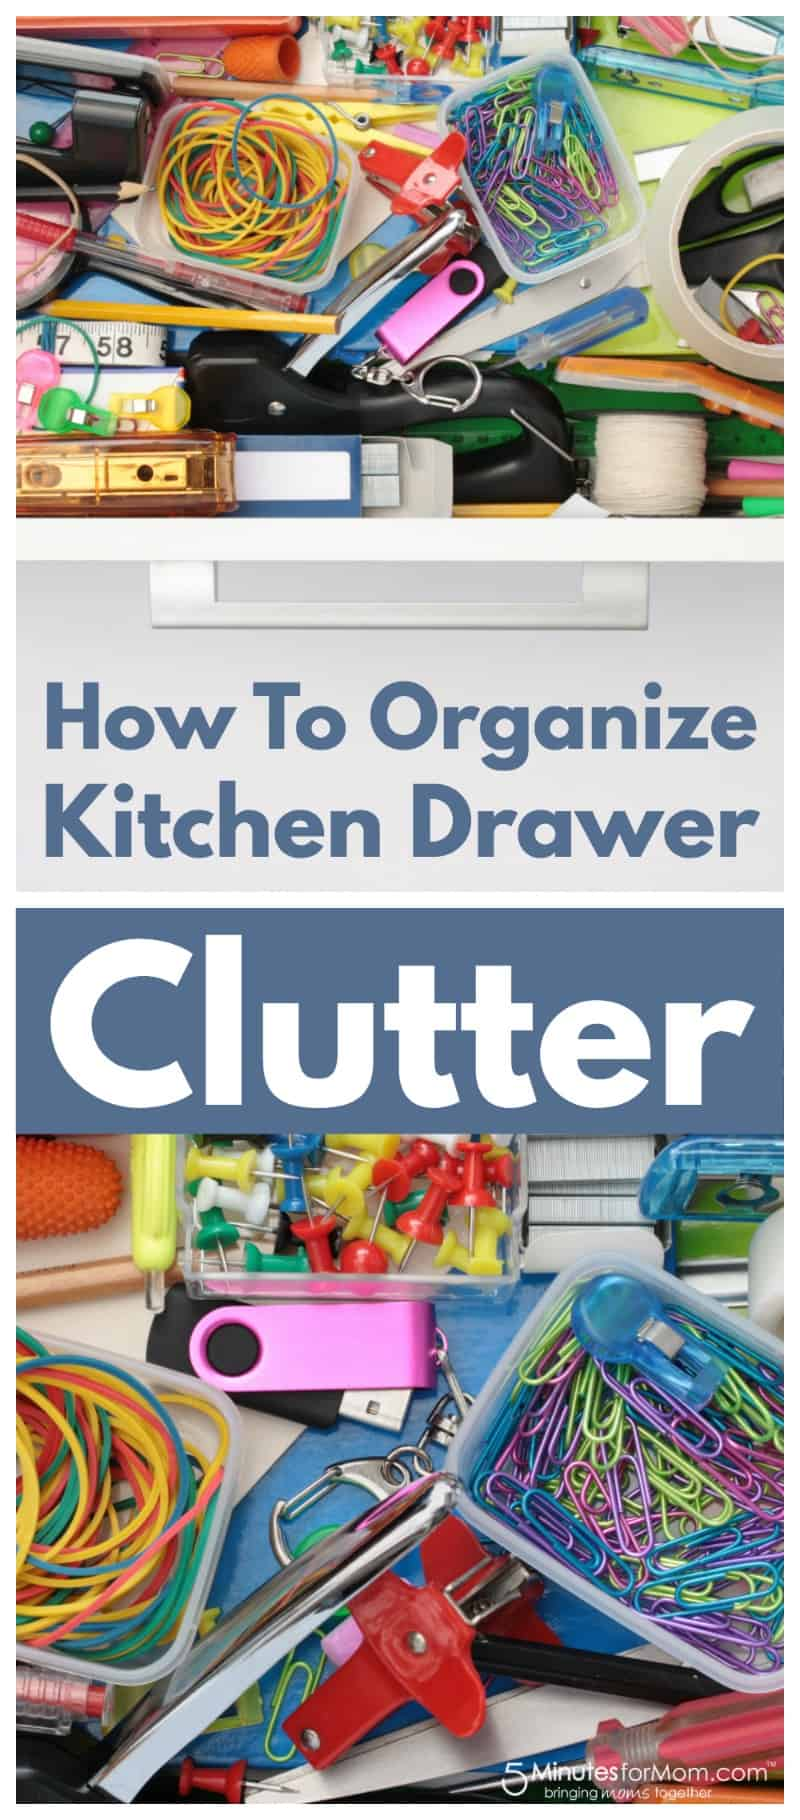 How to organize kitchen drawer clutter 5 minutes for mom How to organize kitchen drawers